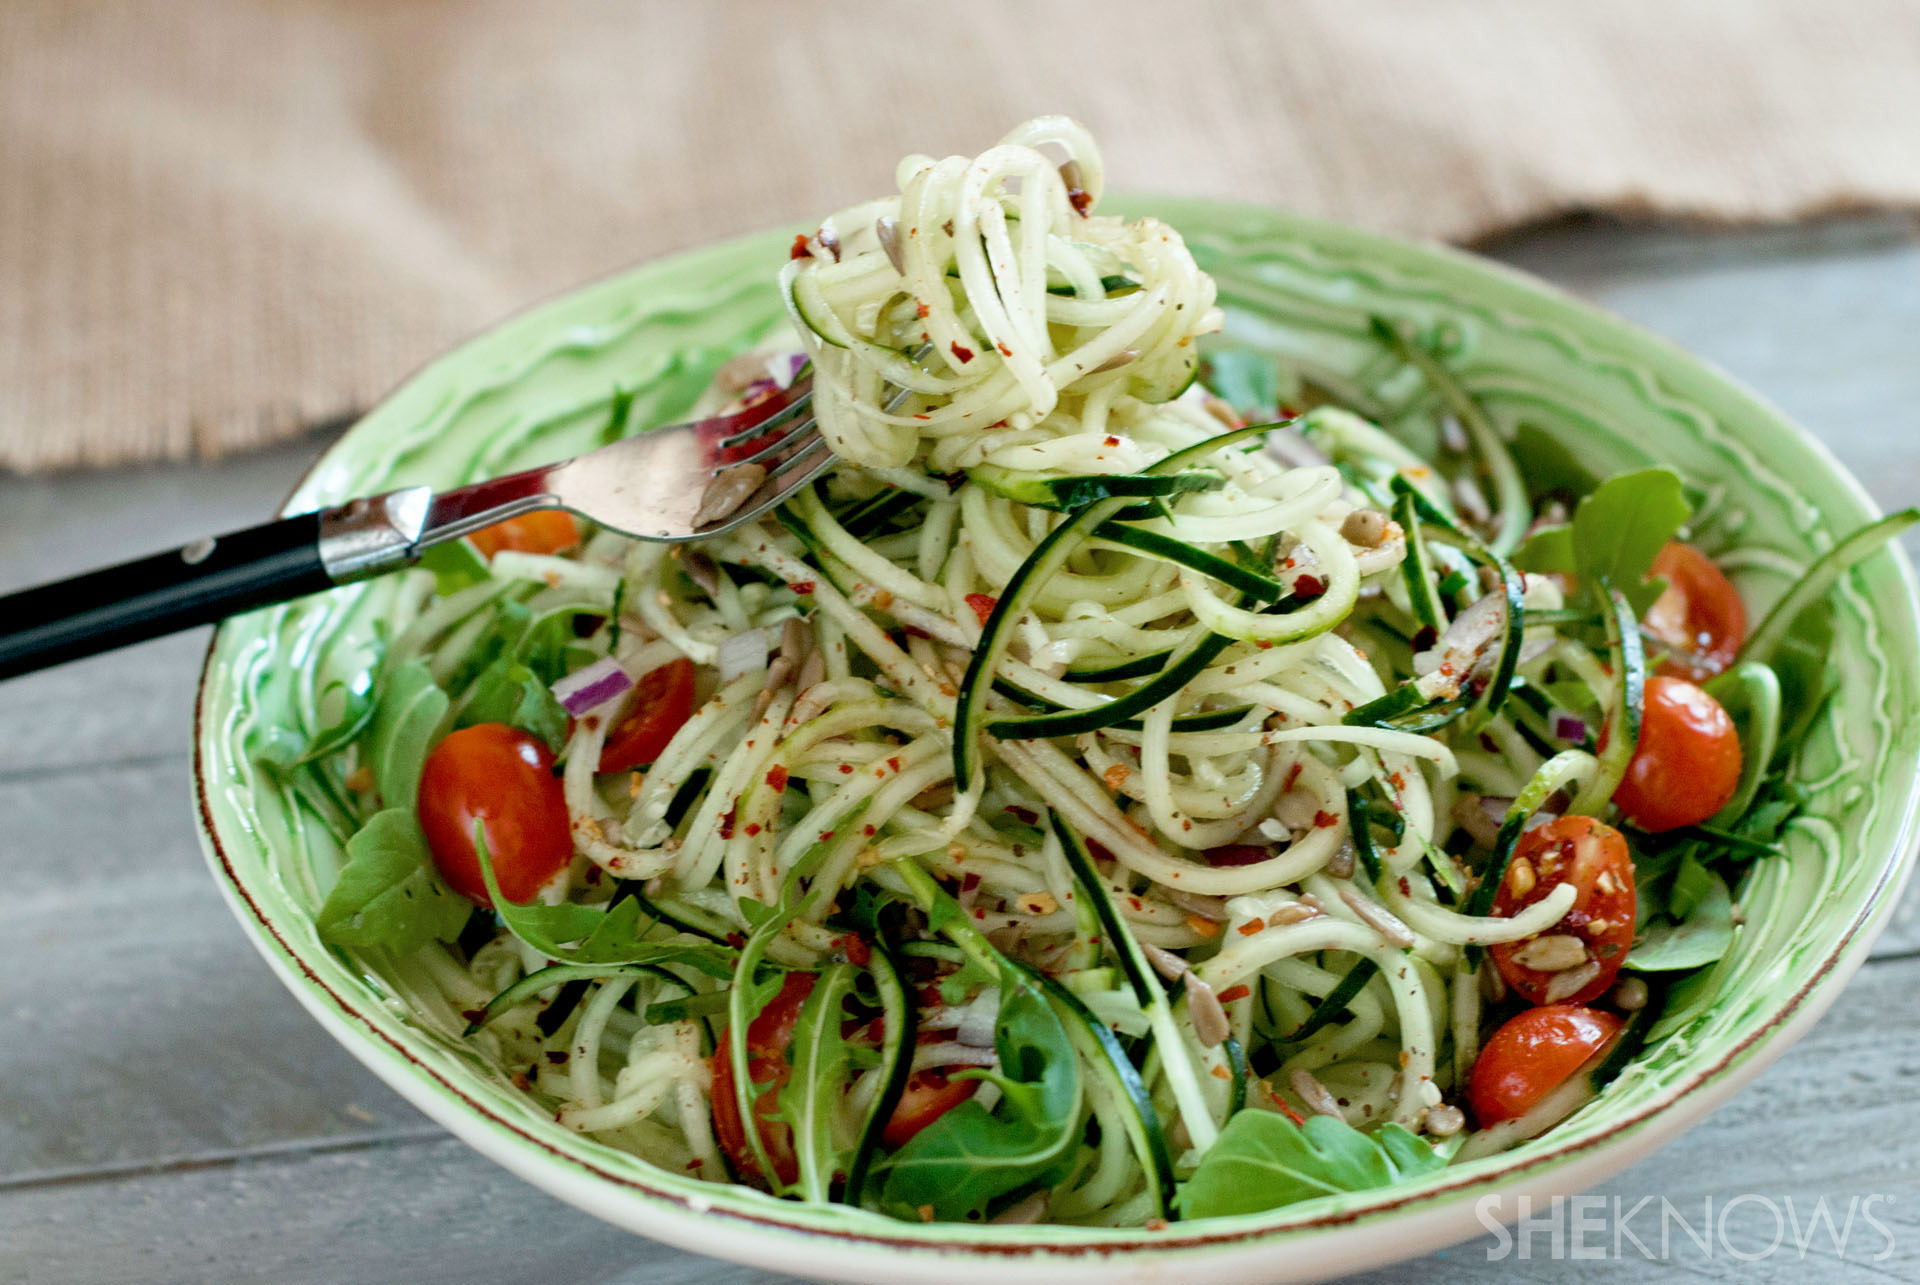 Sweet and spicy cucumber noodles recipe